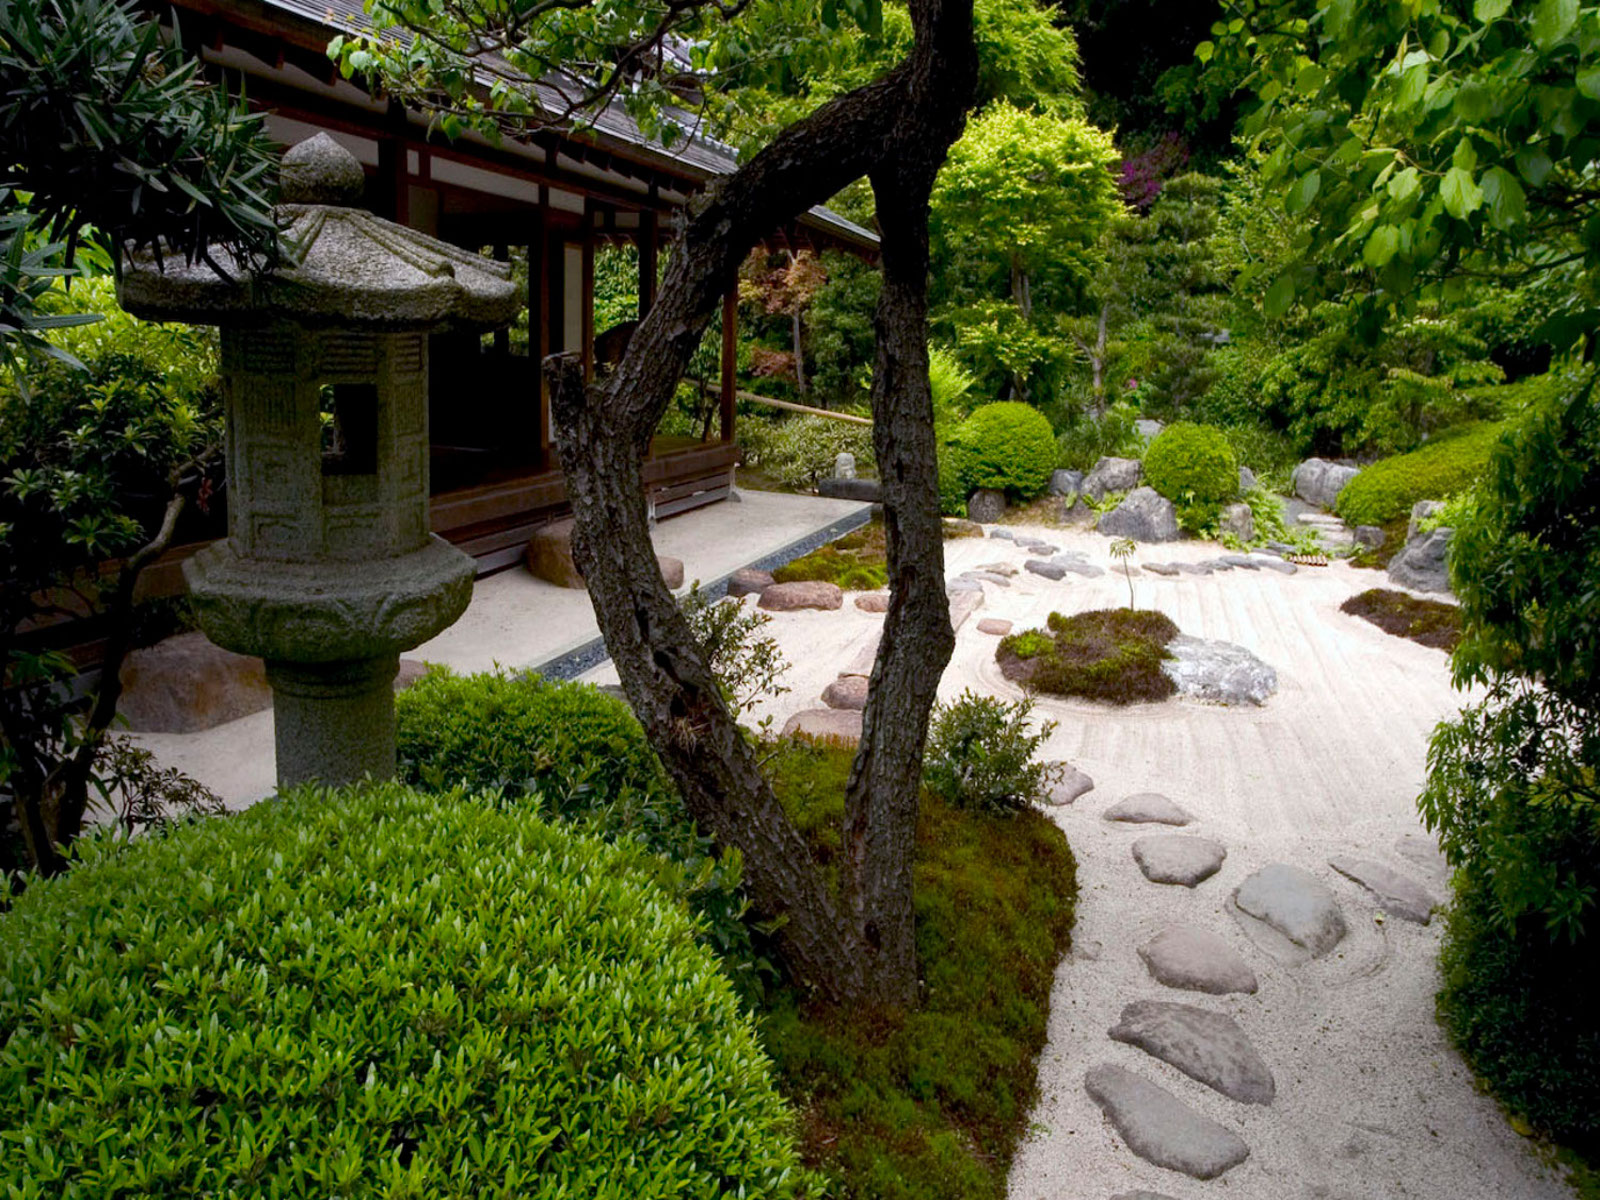 Zen garden wallpaper hd wallpaper pictures gallery for Japanese landscape architecture